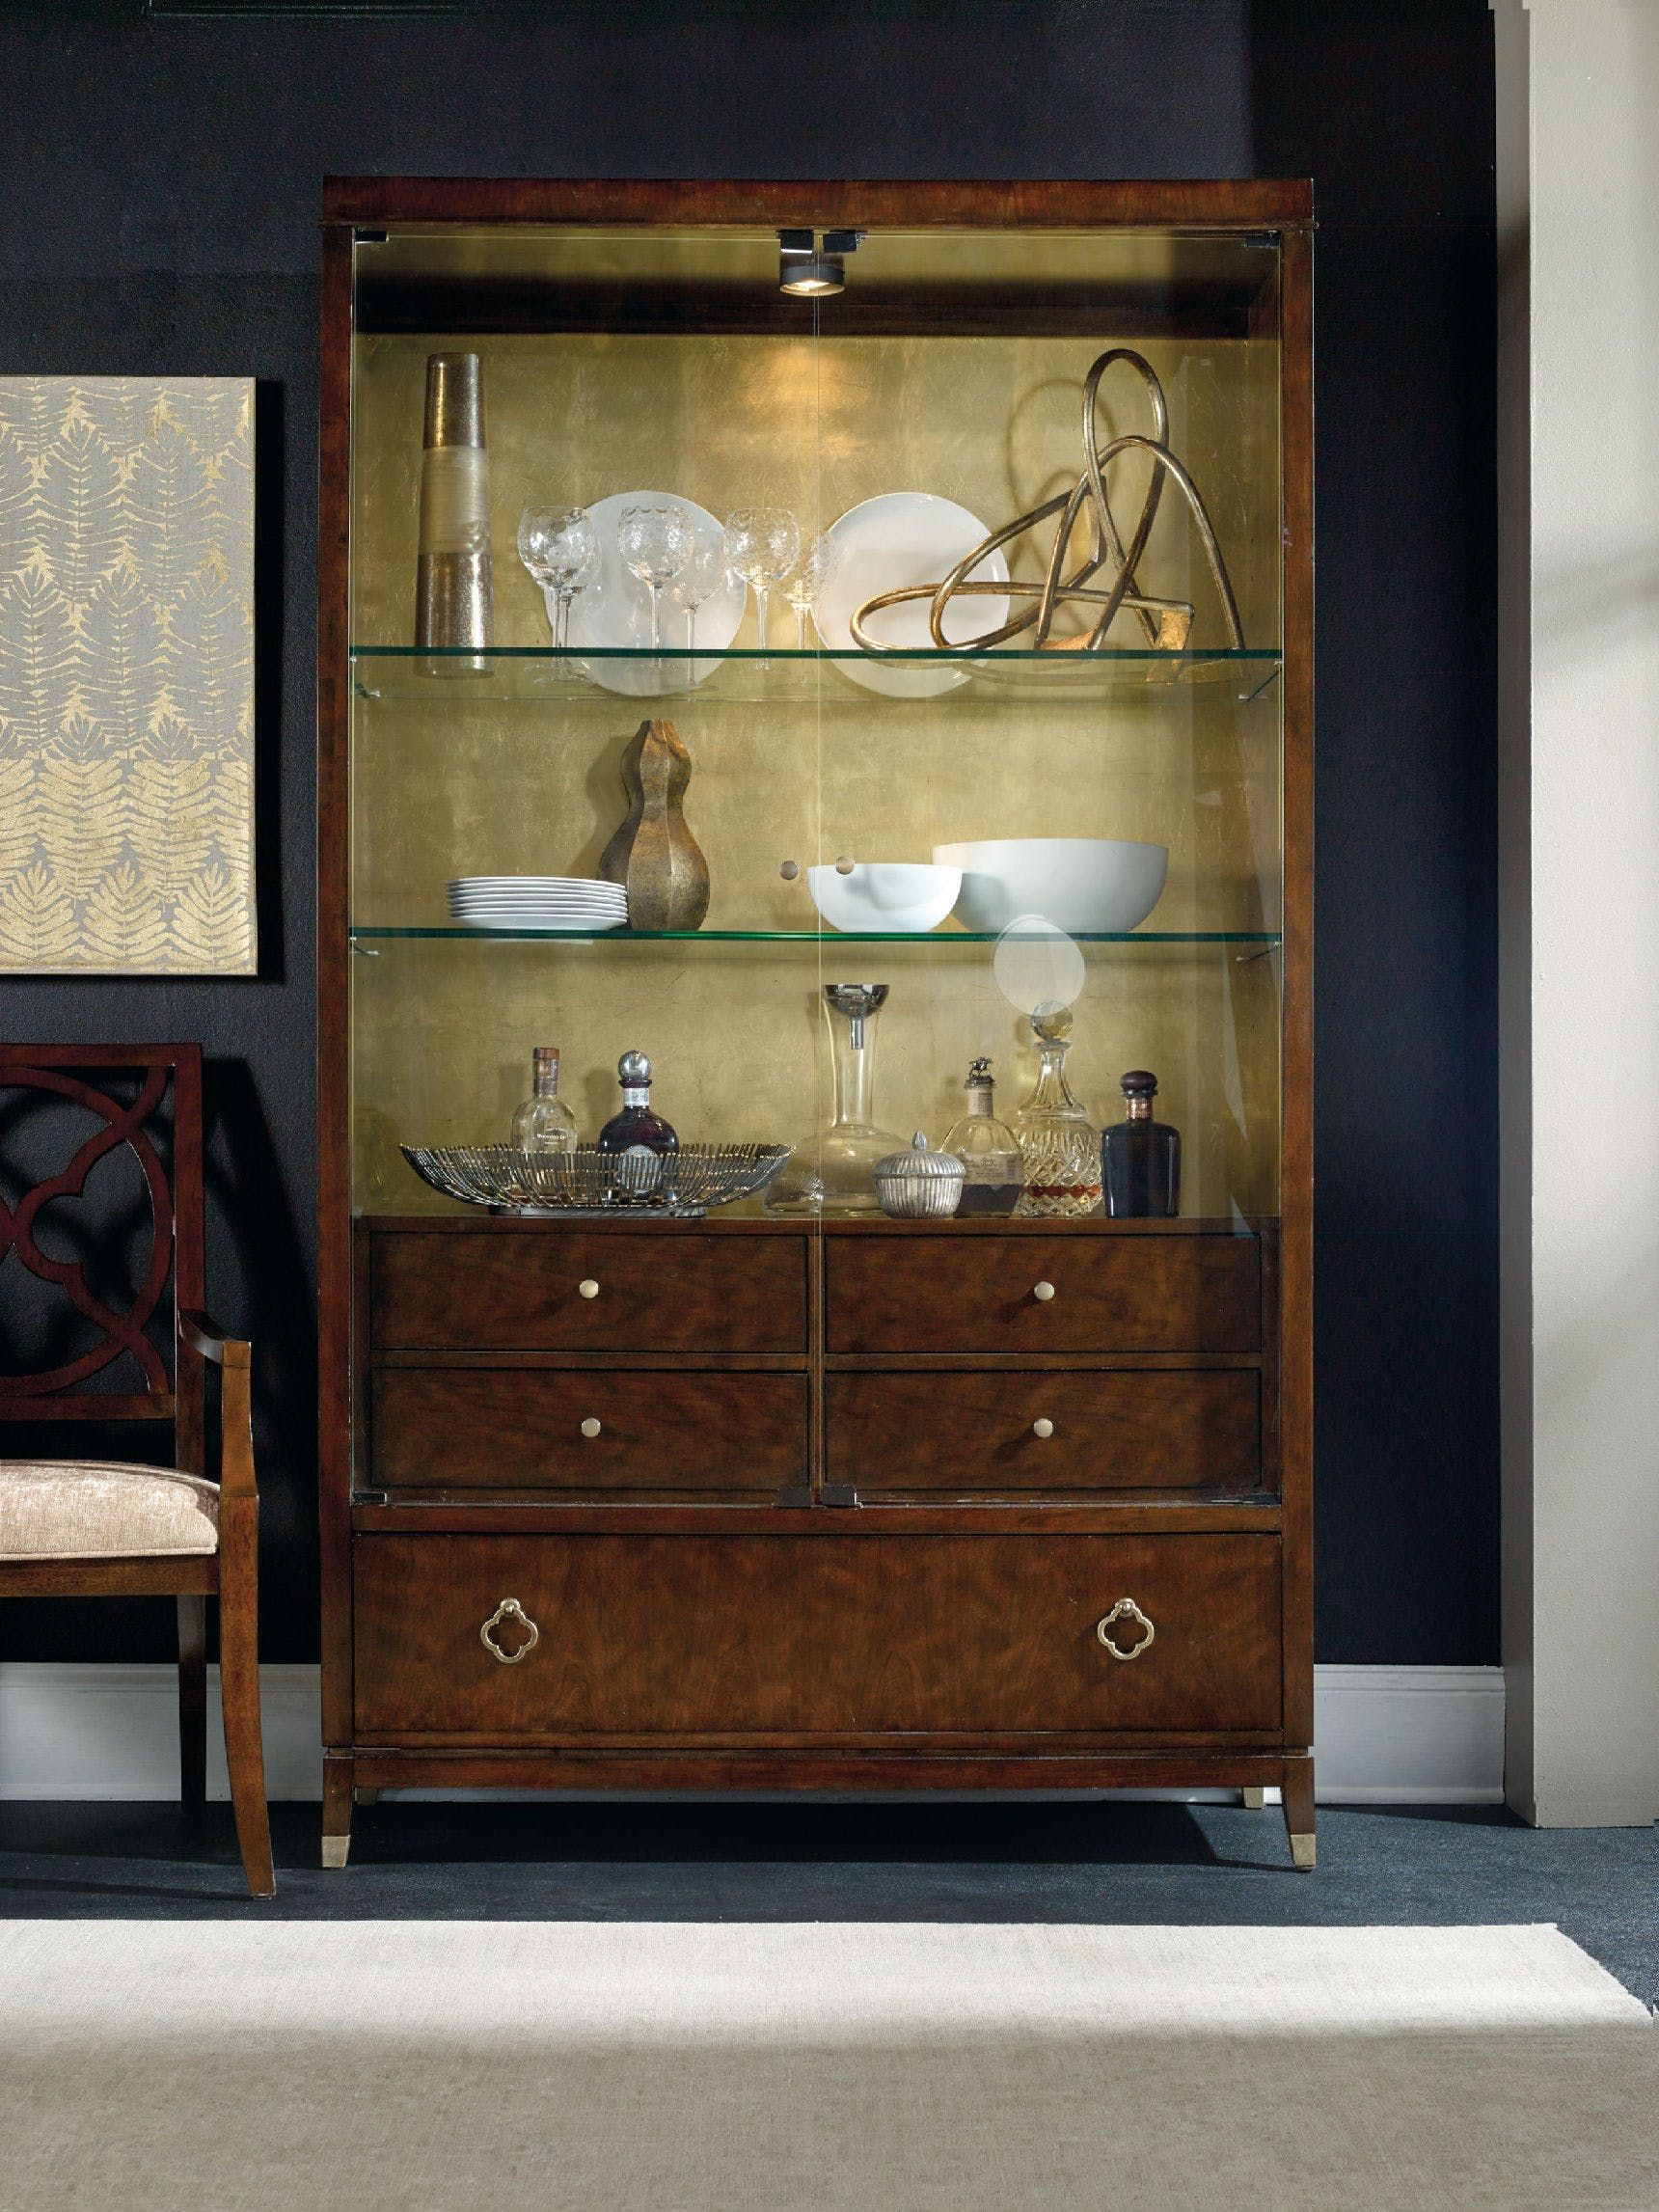 Hooker Furniture Skyline Display Cabinet 5336 75908 Dining Room CabinetsCurio